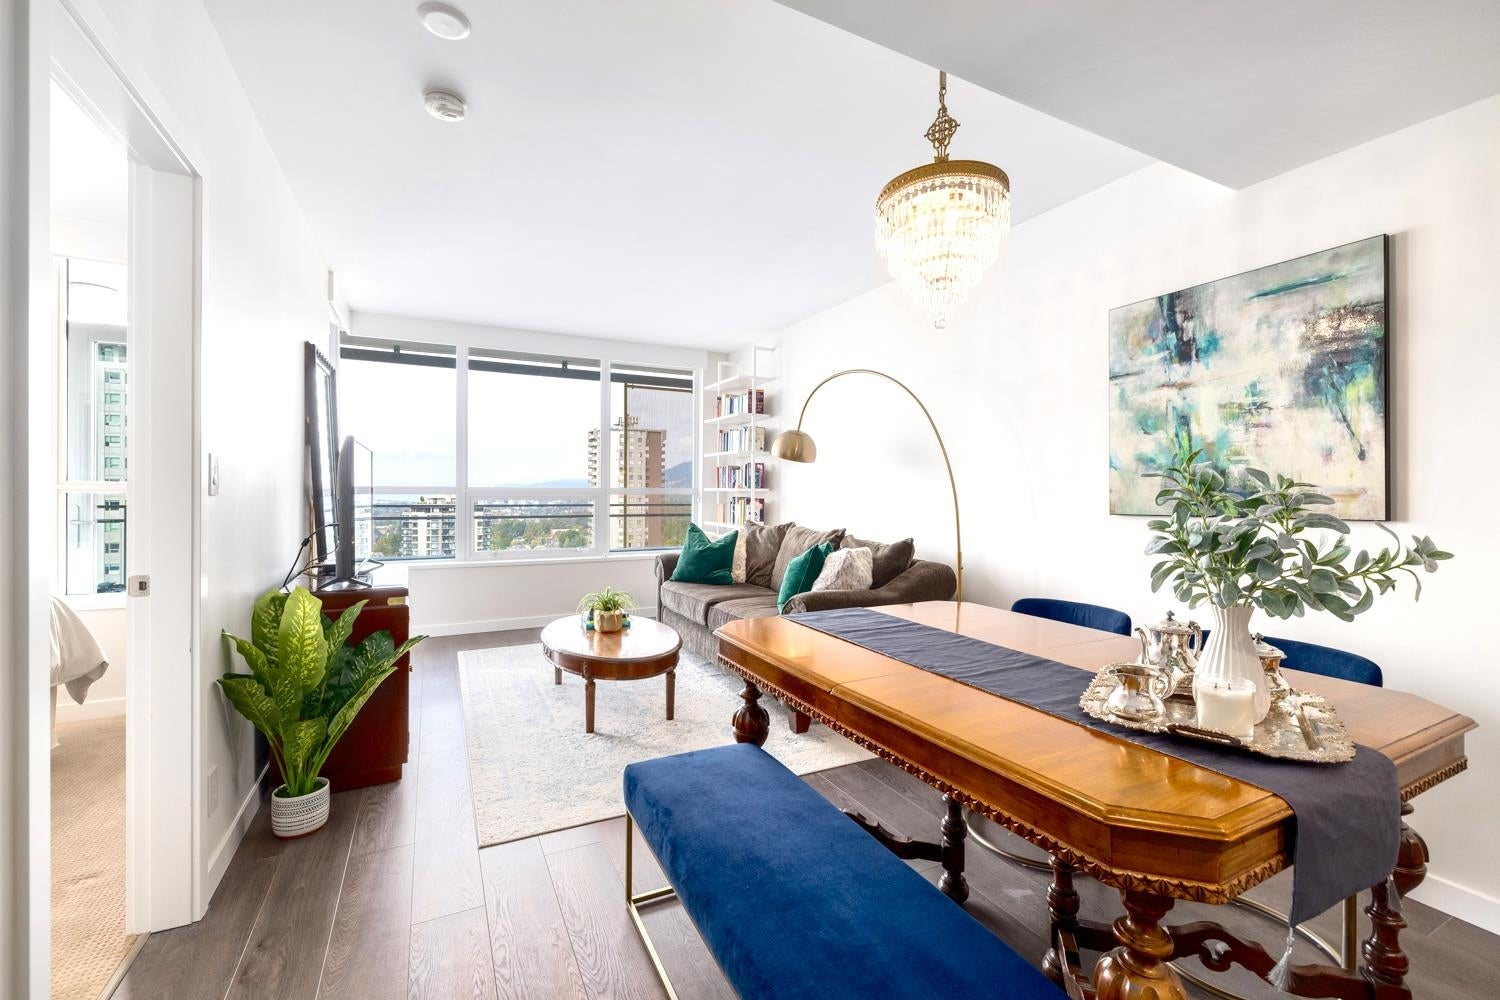 1205 125 E 14TH STREET - Central Lonsdale Apartment/Condo for sale, 1 Bedroom (R2623896) - #1